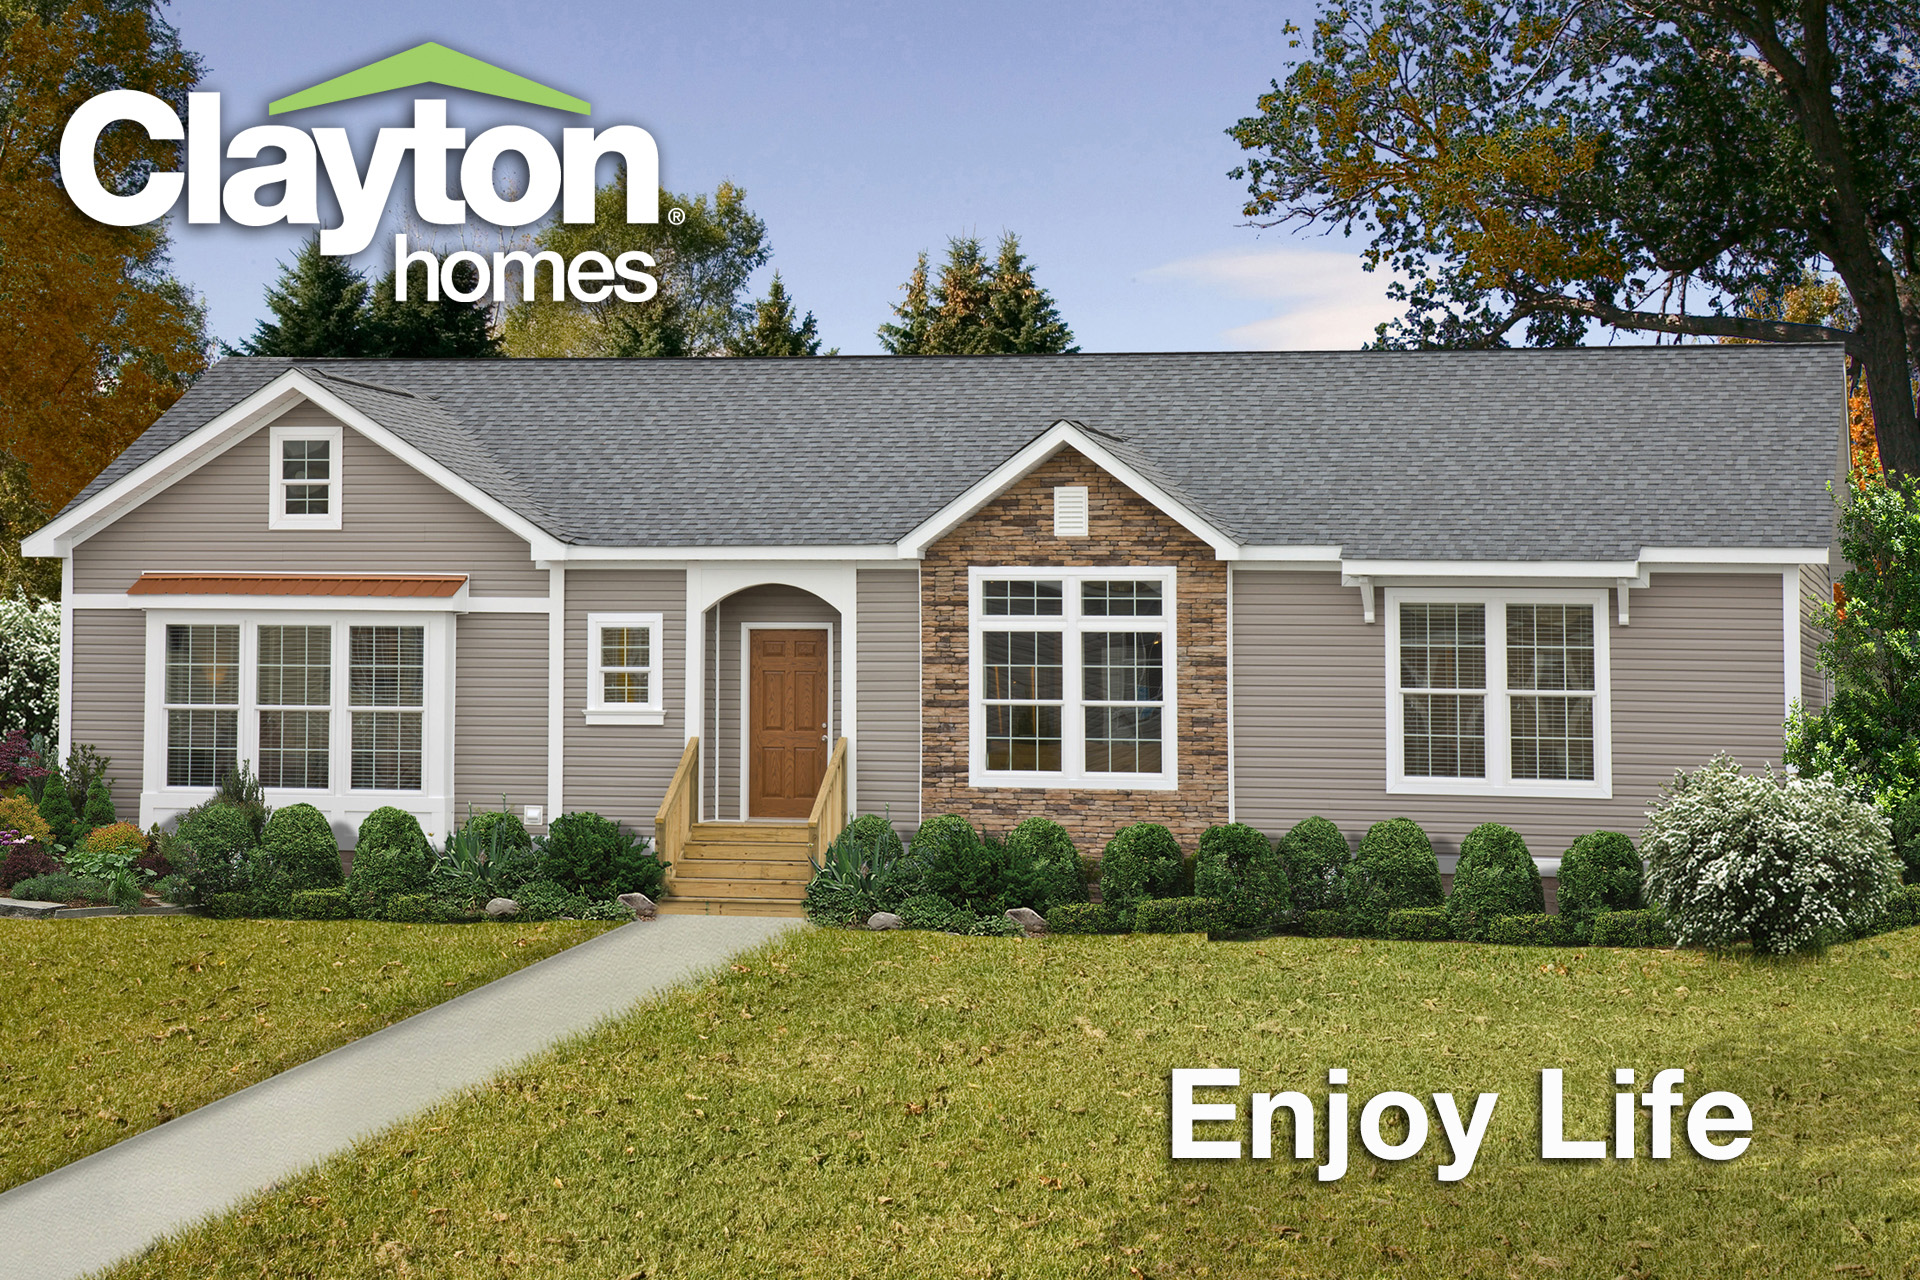 Clayton Homes Launches Enjoy Life Sweepstakes for Football Fans on oakwood homes, patriot homes, fleetwood homes, skyline homes, champion homes, palm harbor homes, nationwide homes, fuqua homes, liberty homes, commodore homes, adrian homes, all american homes,